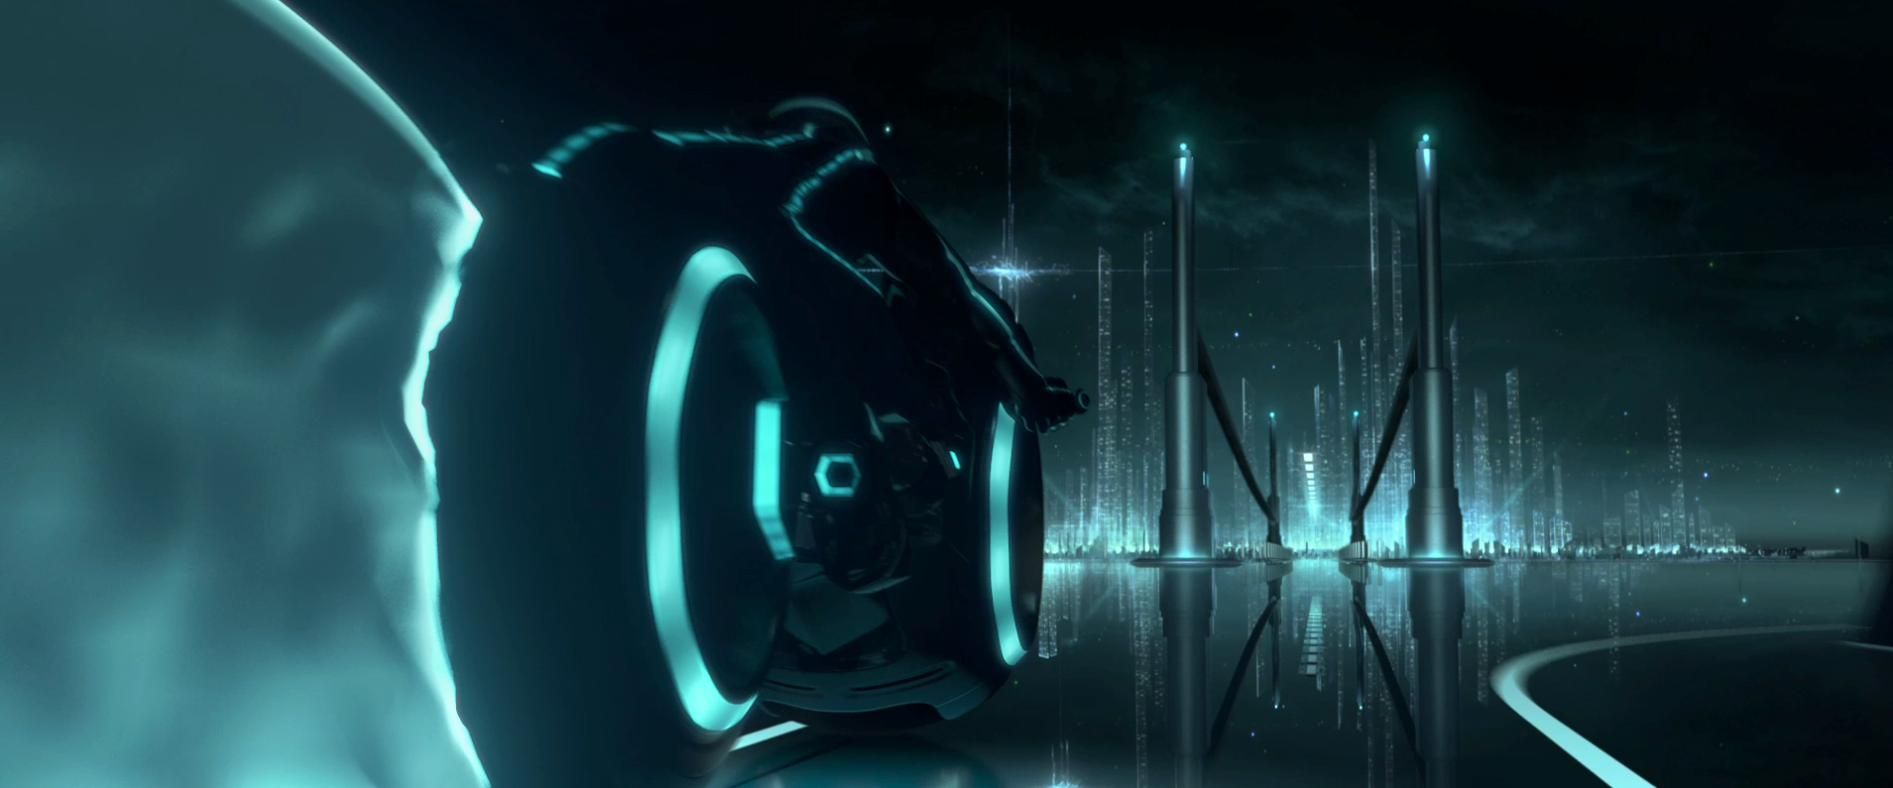 tron legacy wallpapers p wallpaper | hd wallpapers | pinterest